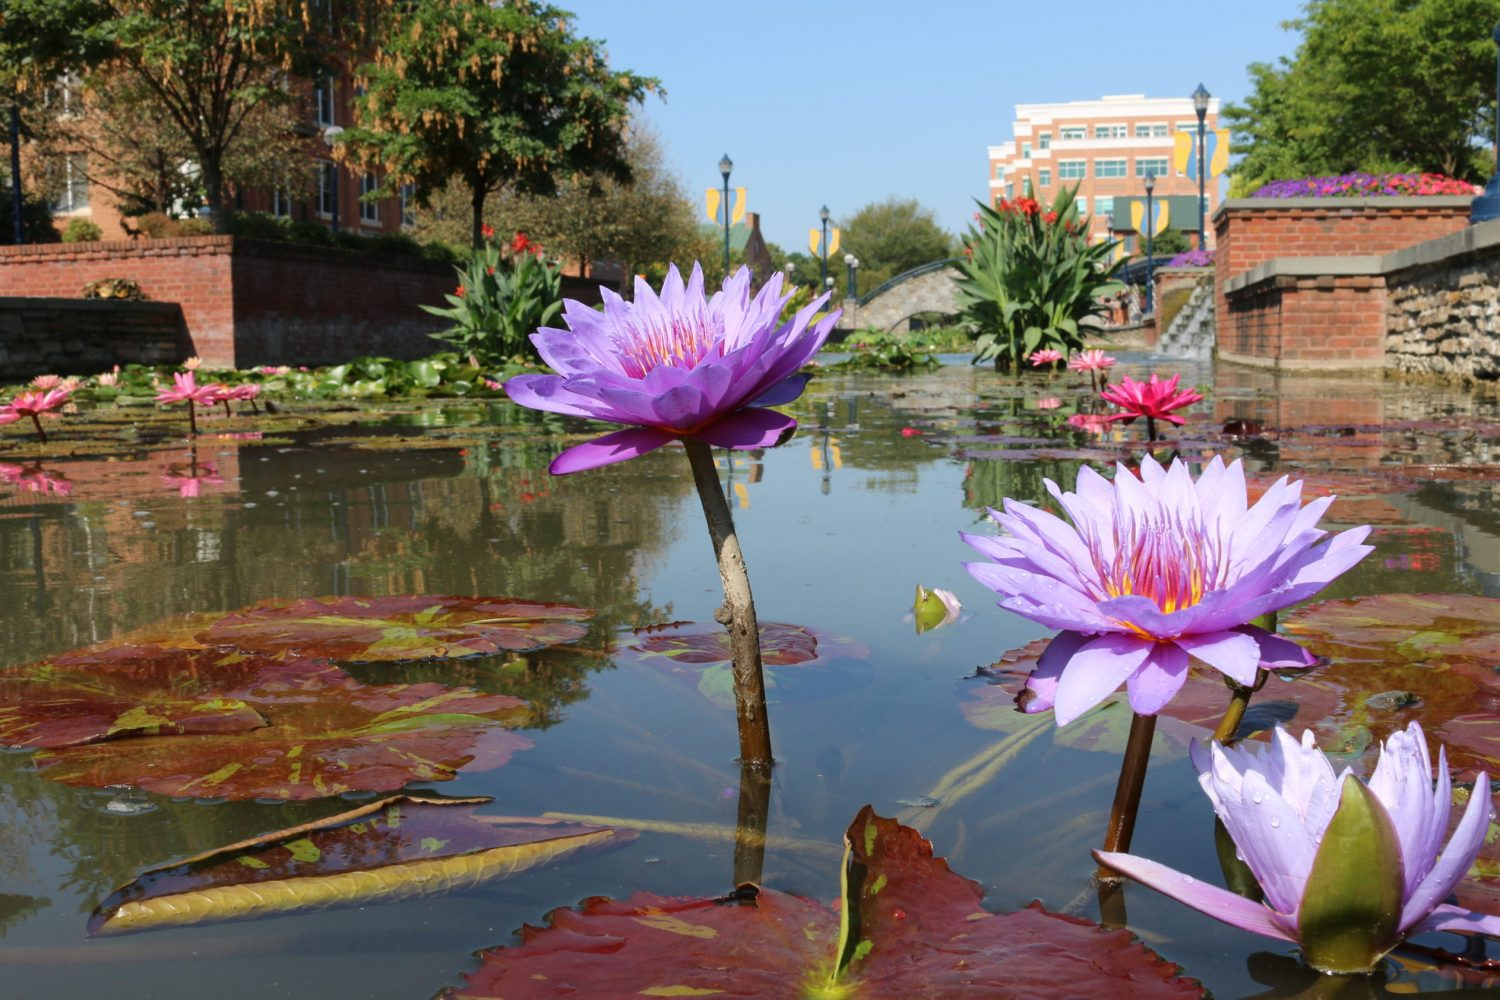 Check Out This Amazing Water Garden